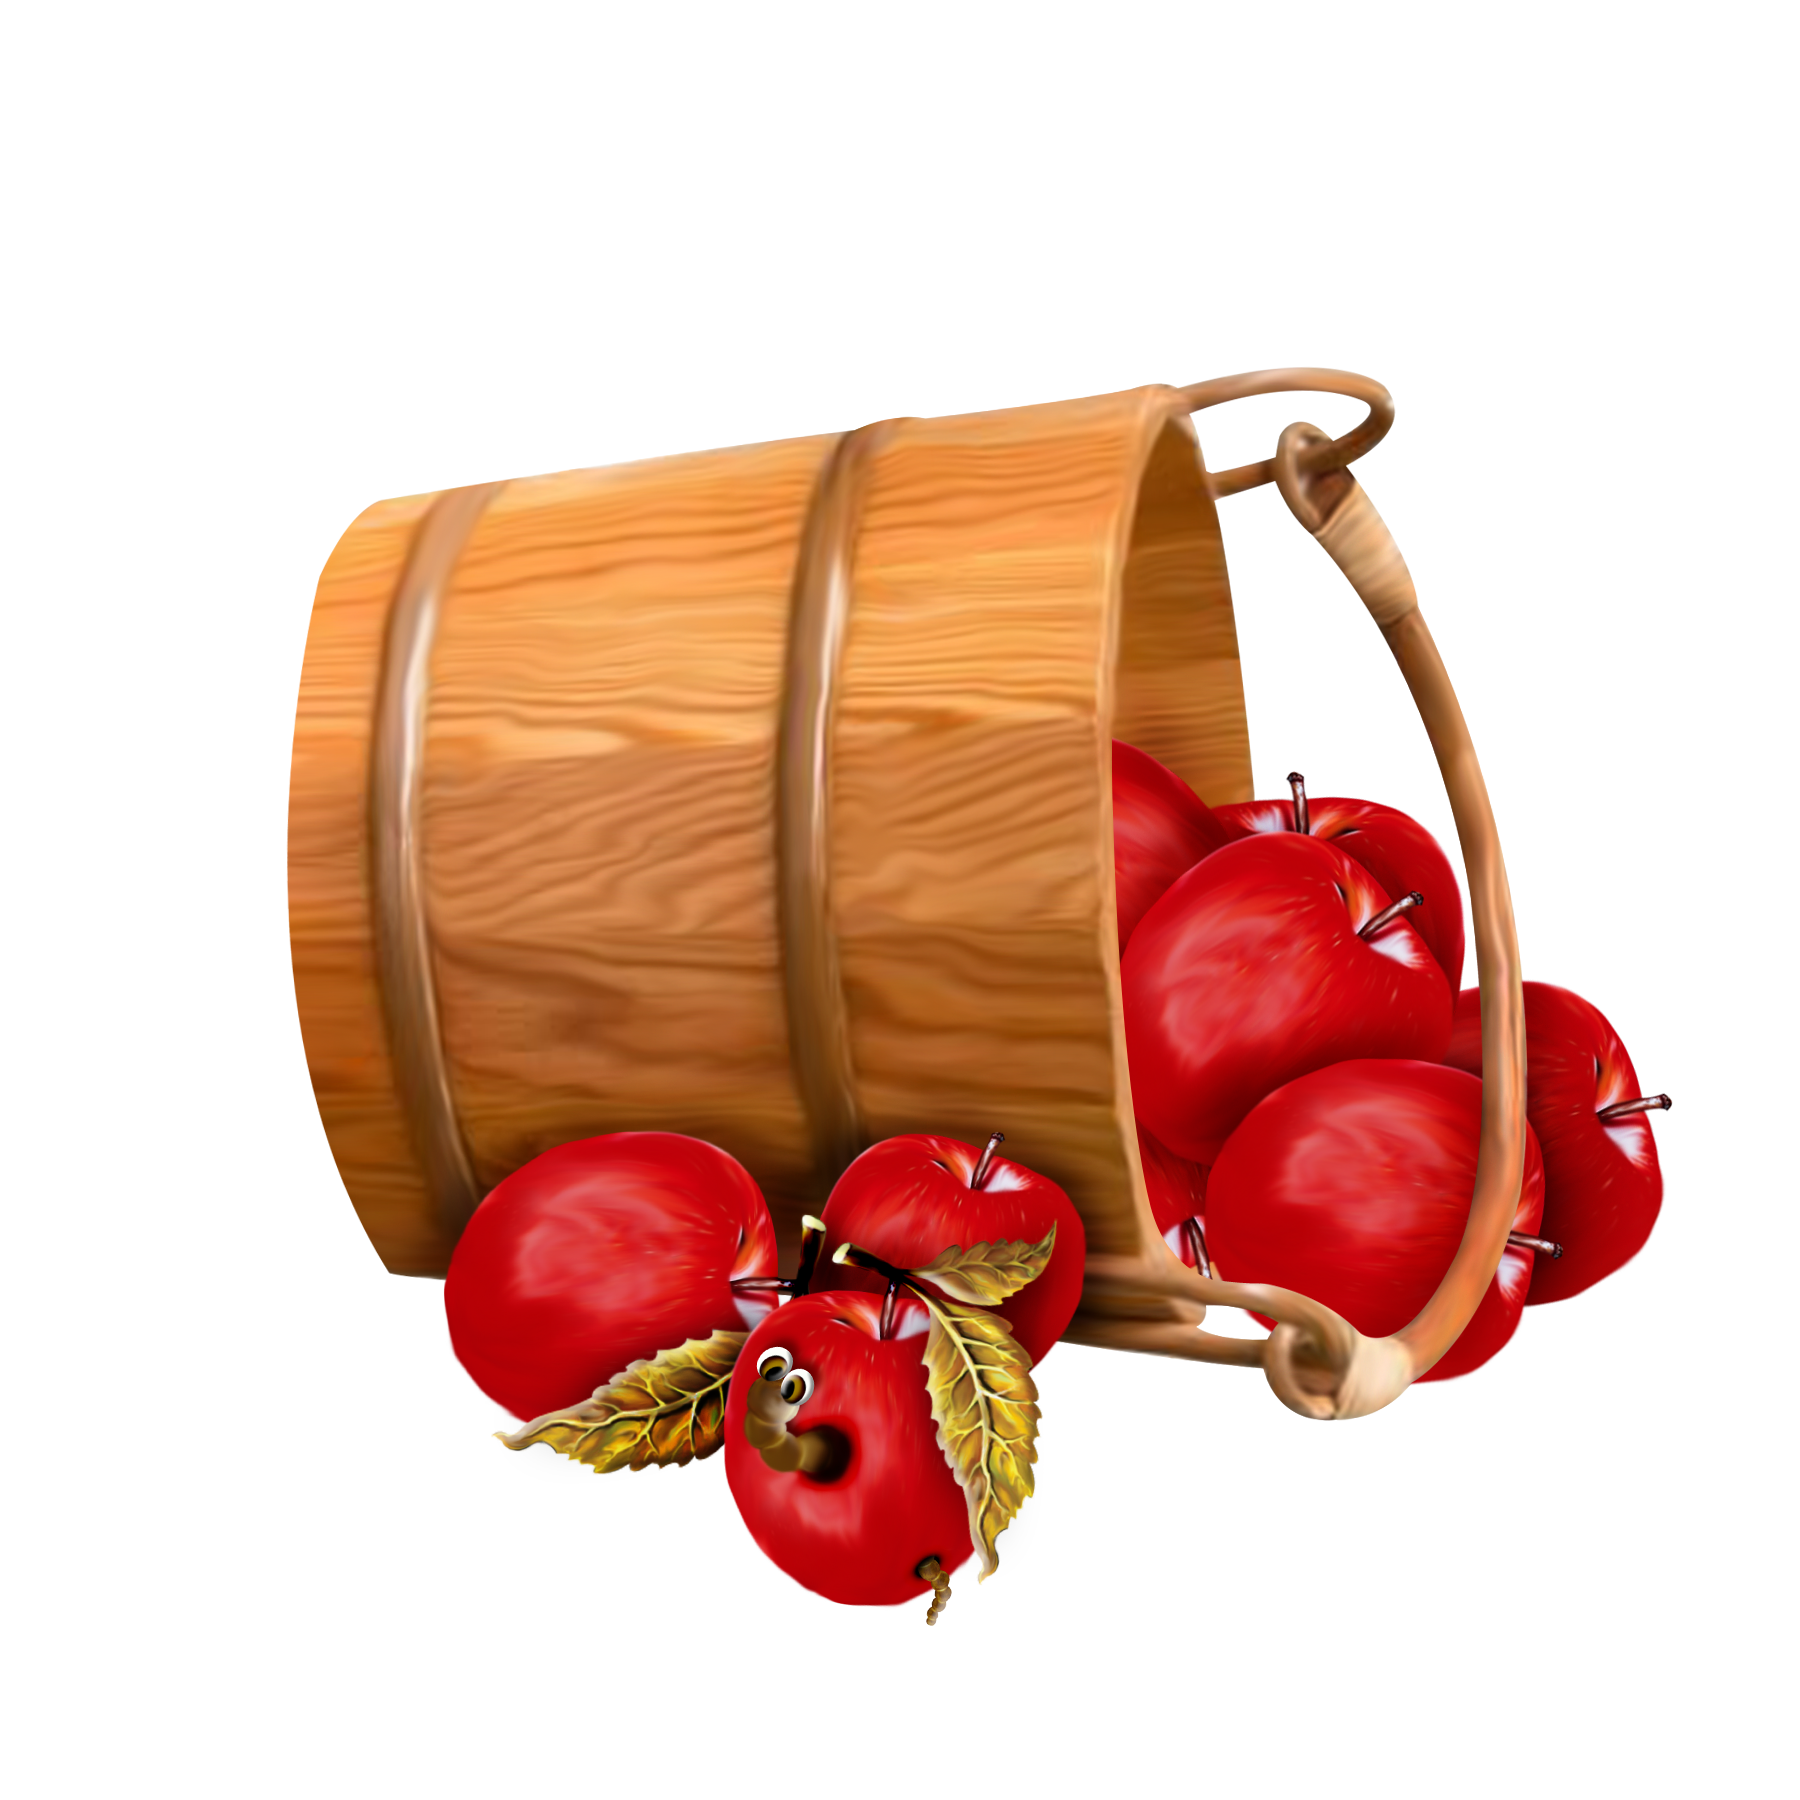 Bucket with Apples Transparent Clipart.